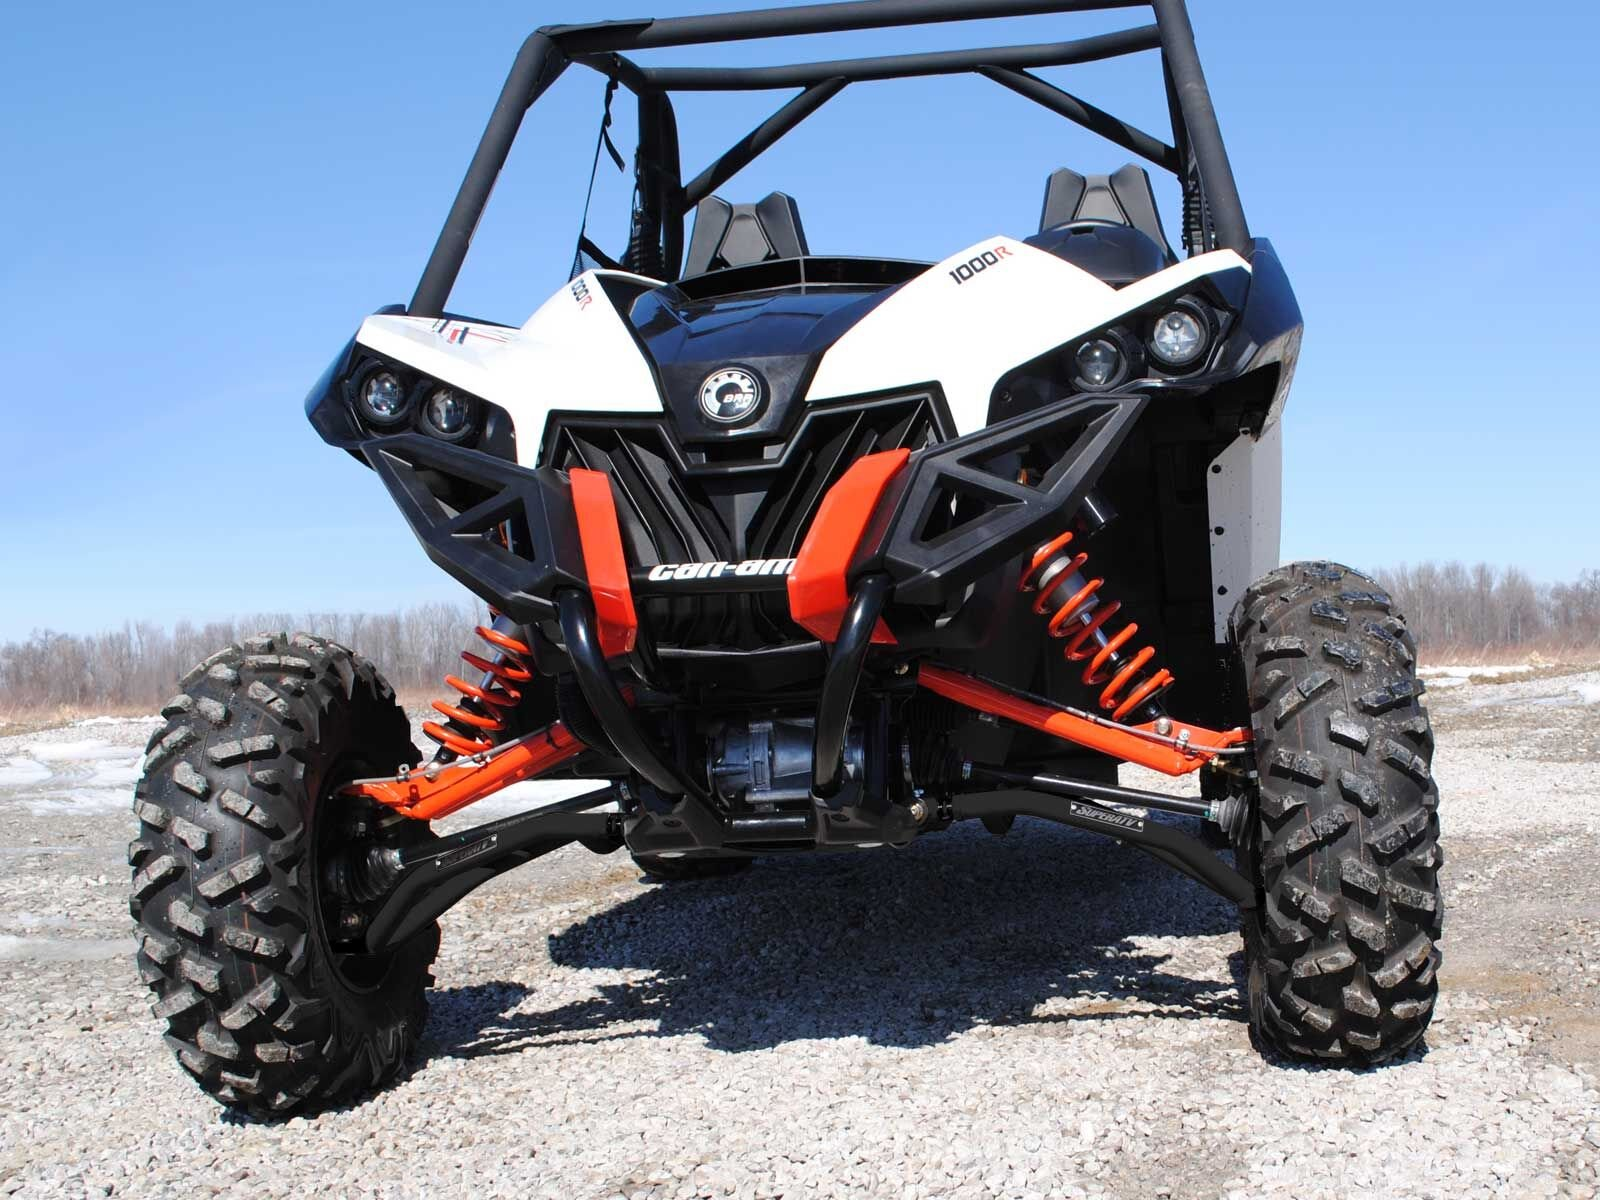 SuperATV High Clearance Front A-Arms for Can-Am Maverick DPS/XMR/XRS/MAX/Turbo (See Fitment) - Black by SuperATV.com (Image #4)